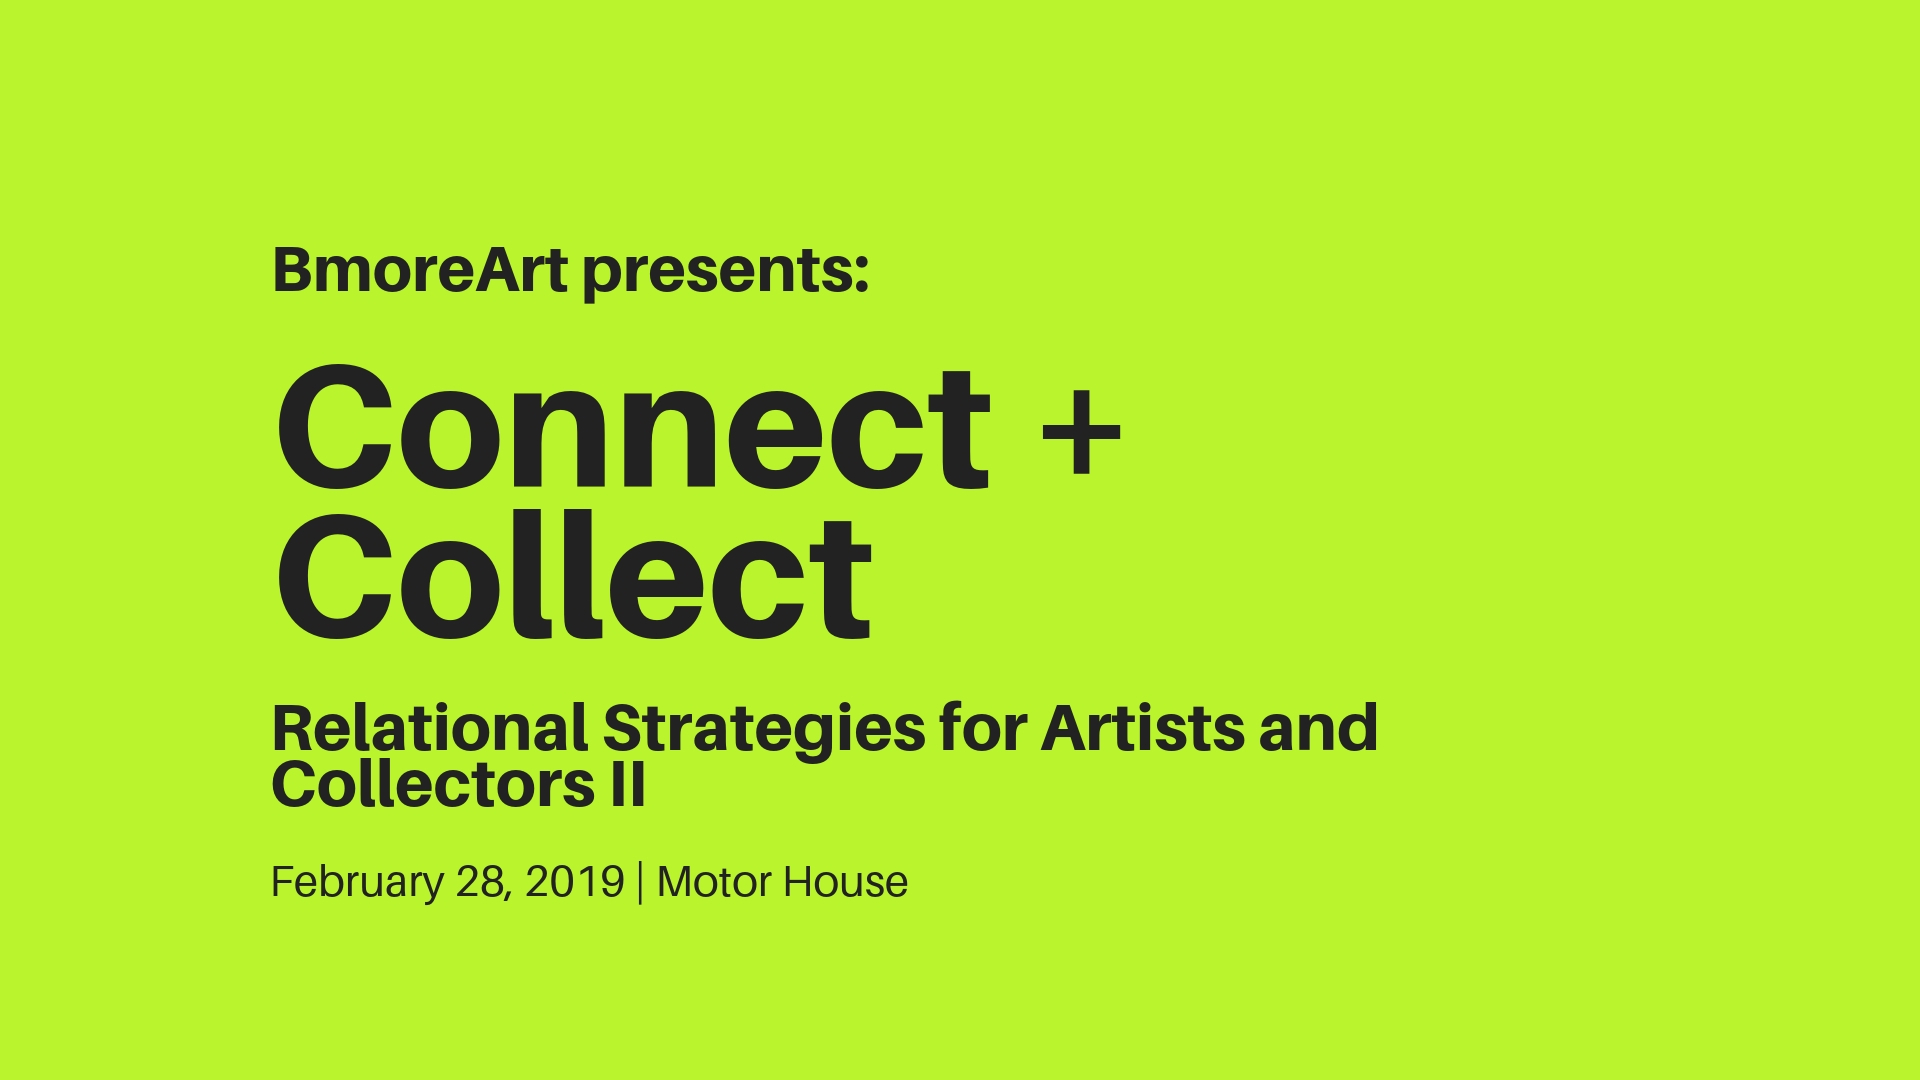 Connect + Collect Part II: February 28